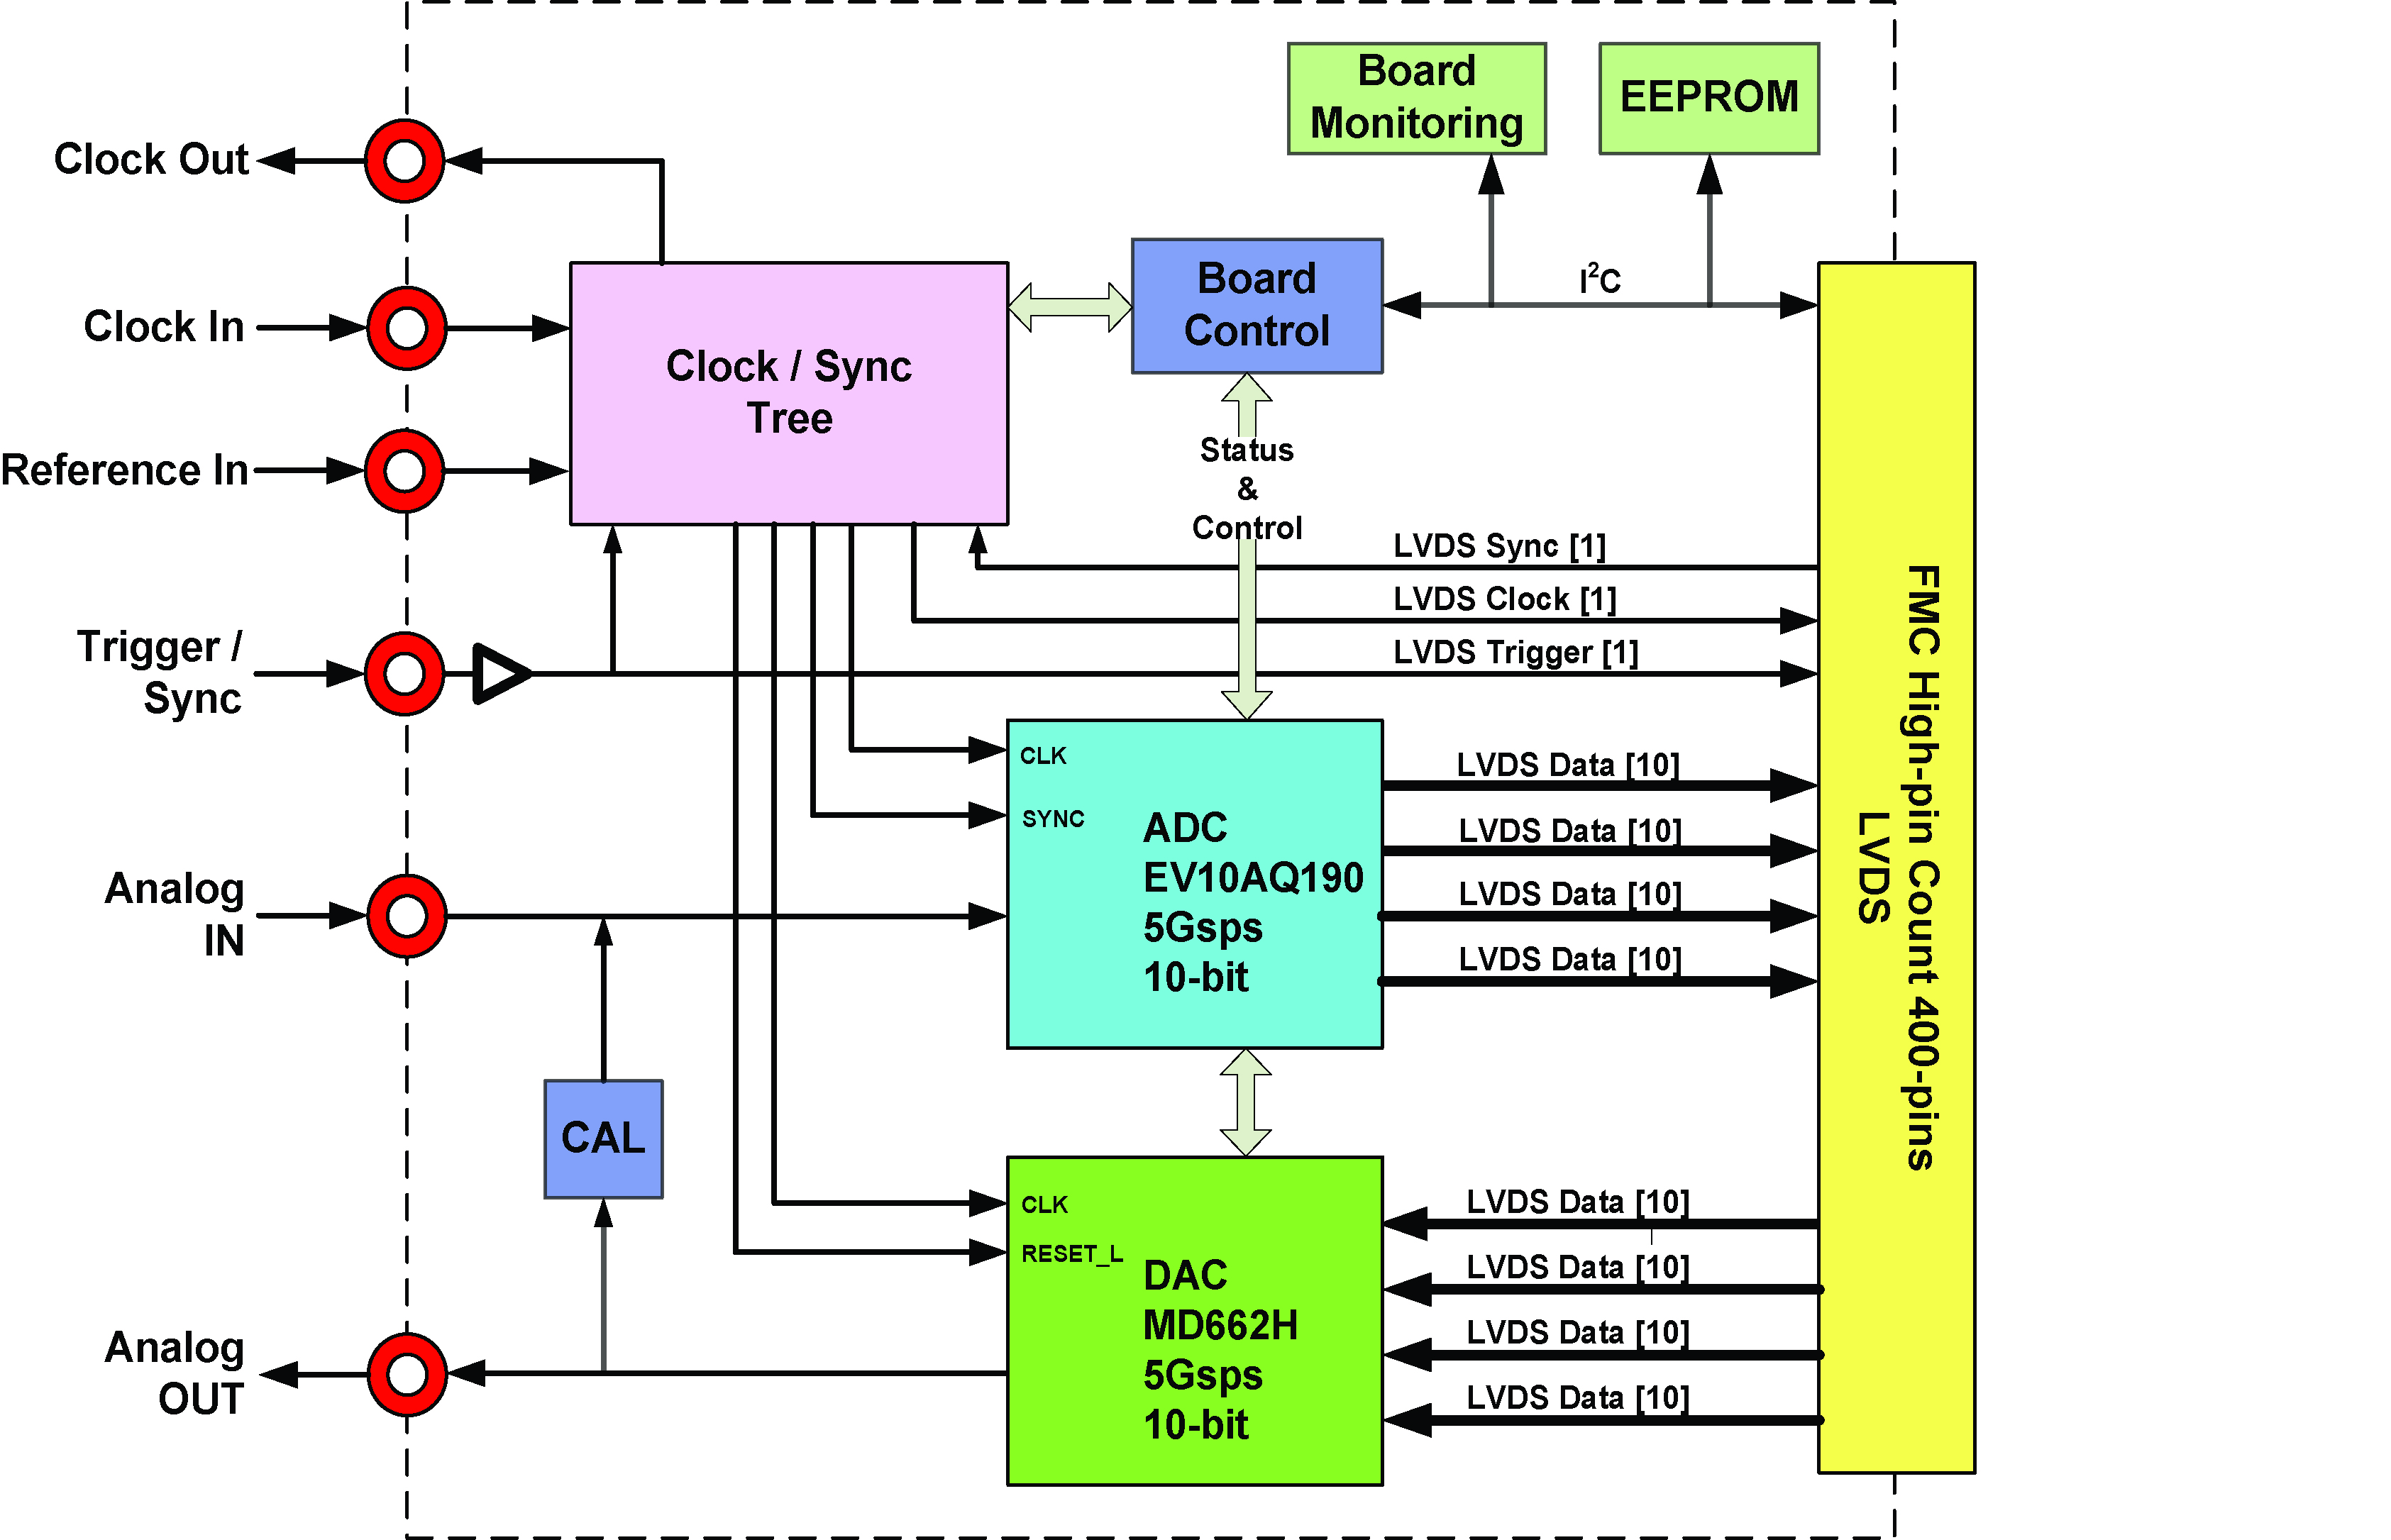 FMC170 Block Diagram